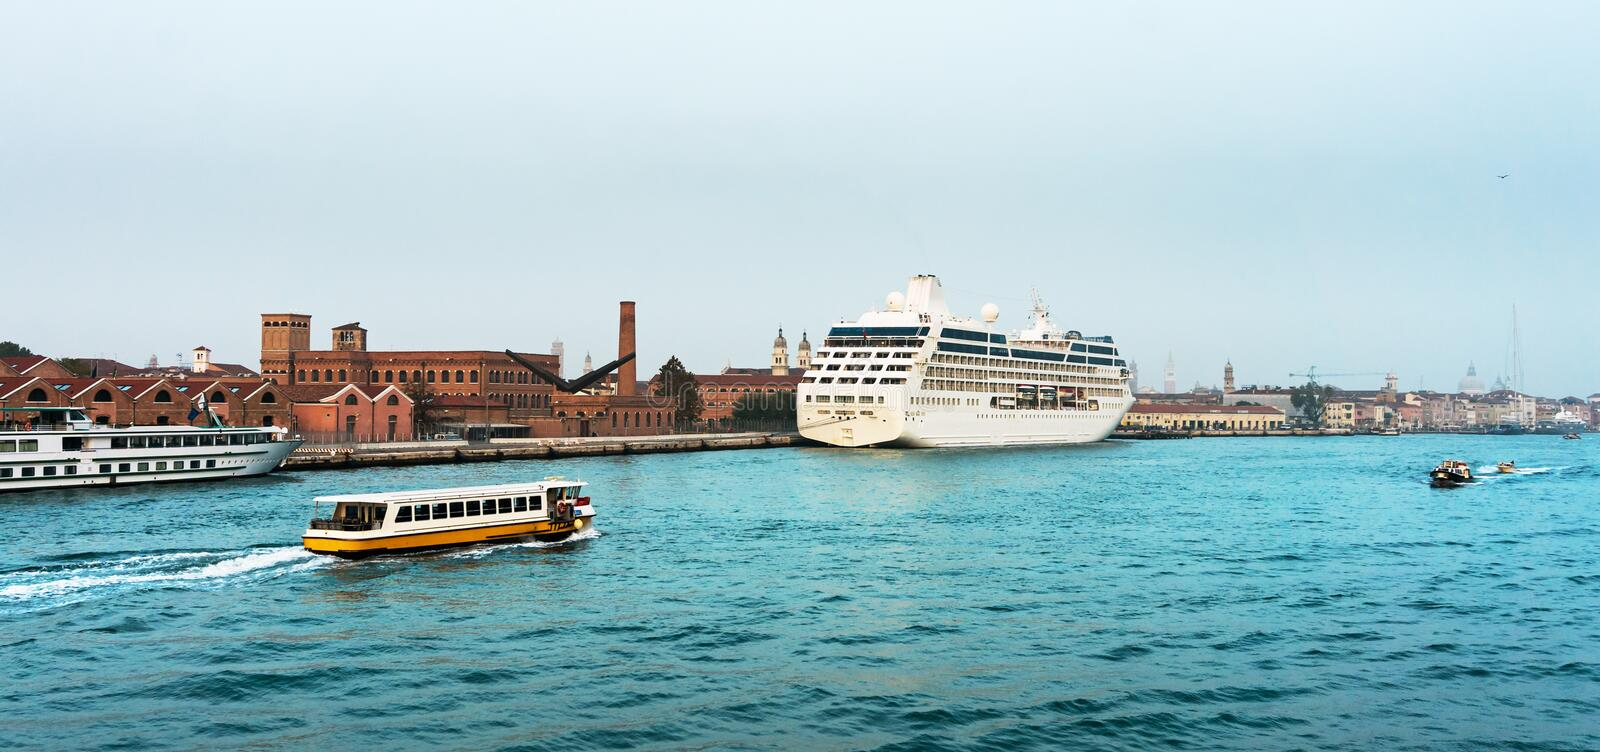 Download Cruise Liner Docked In The Old Town Of Venice Stock Photo - Image: 48525707